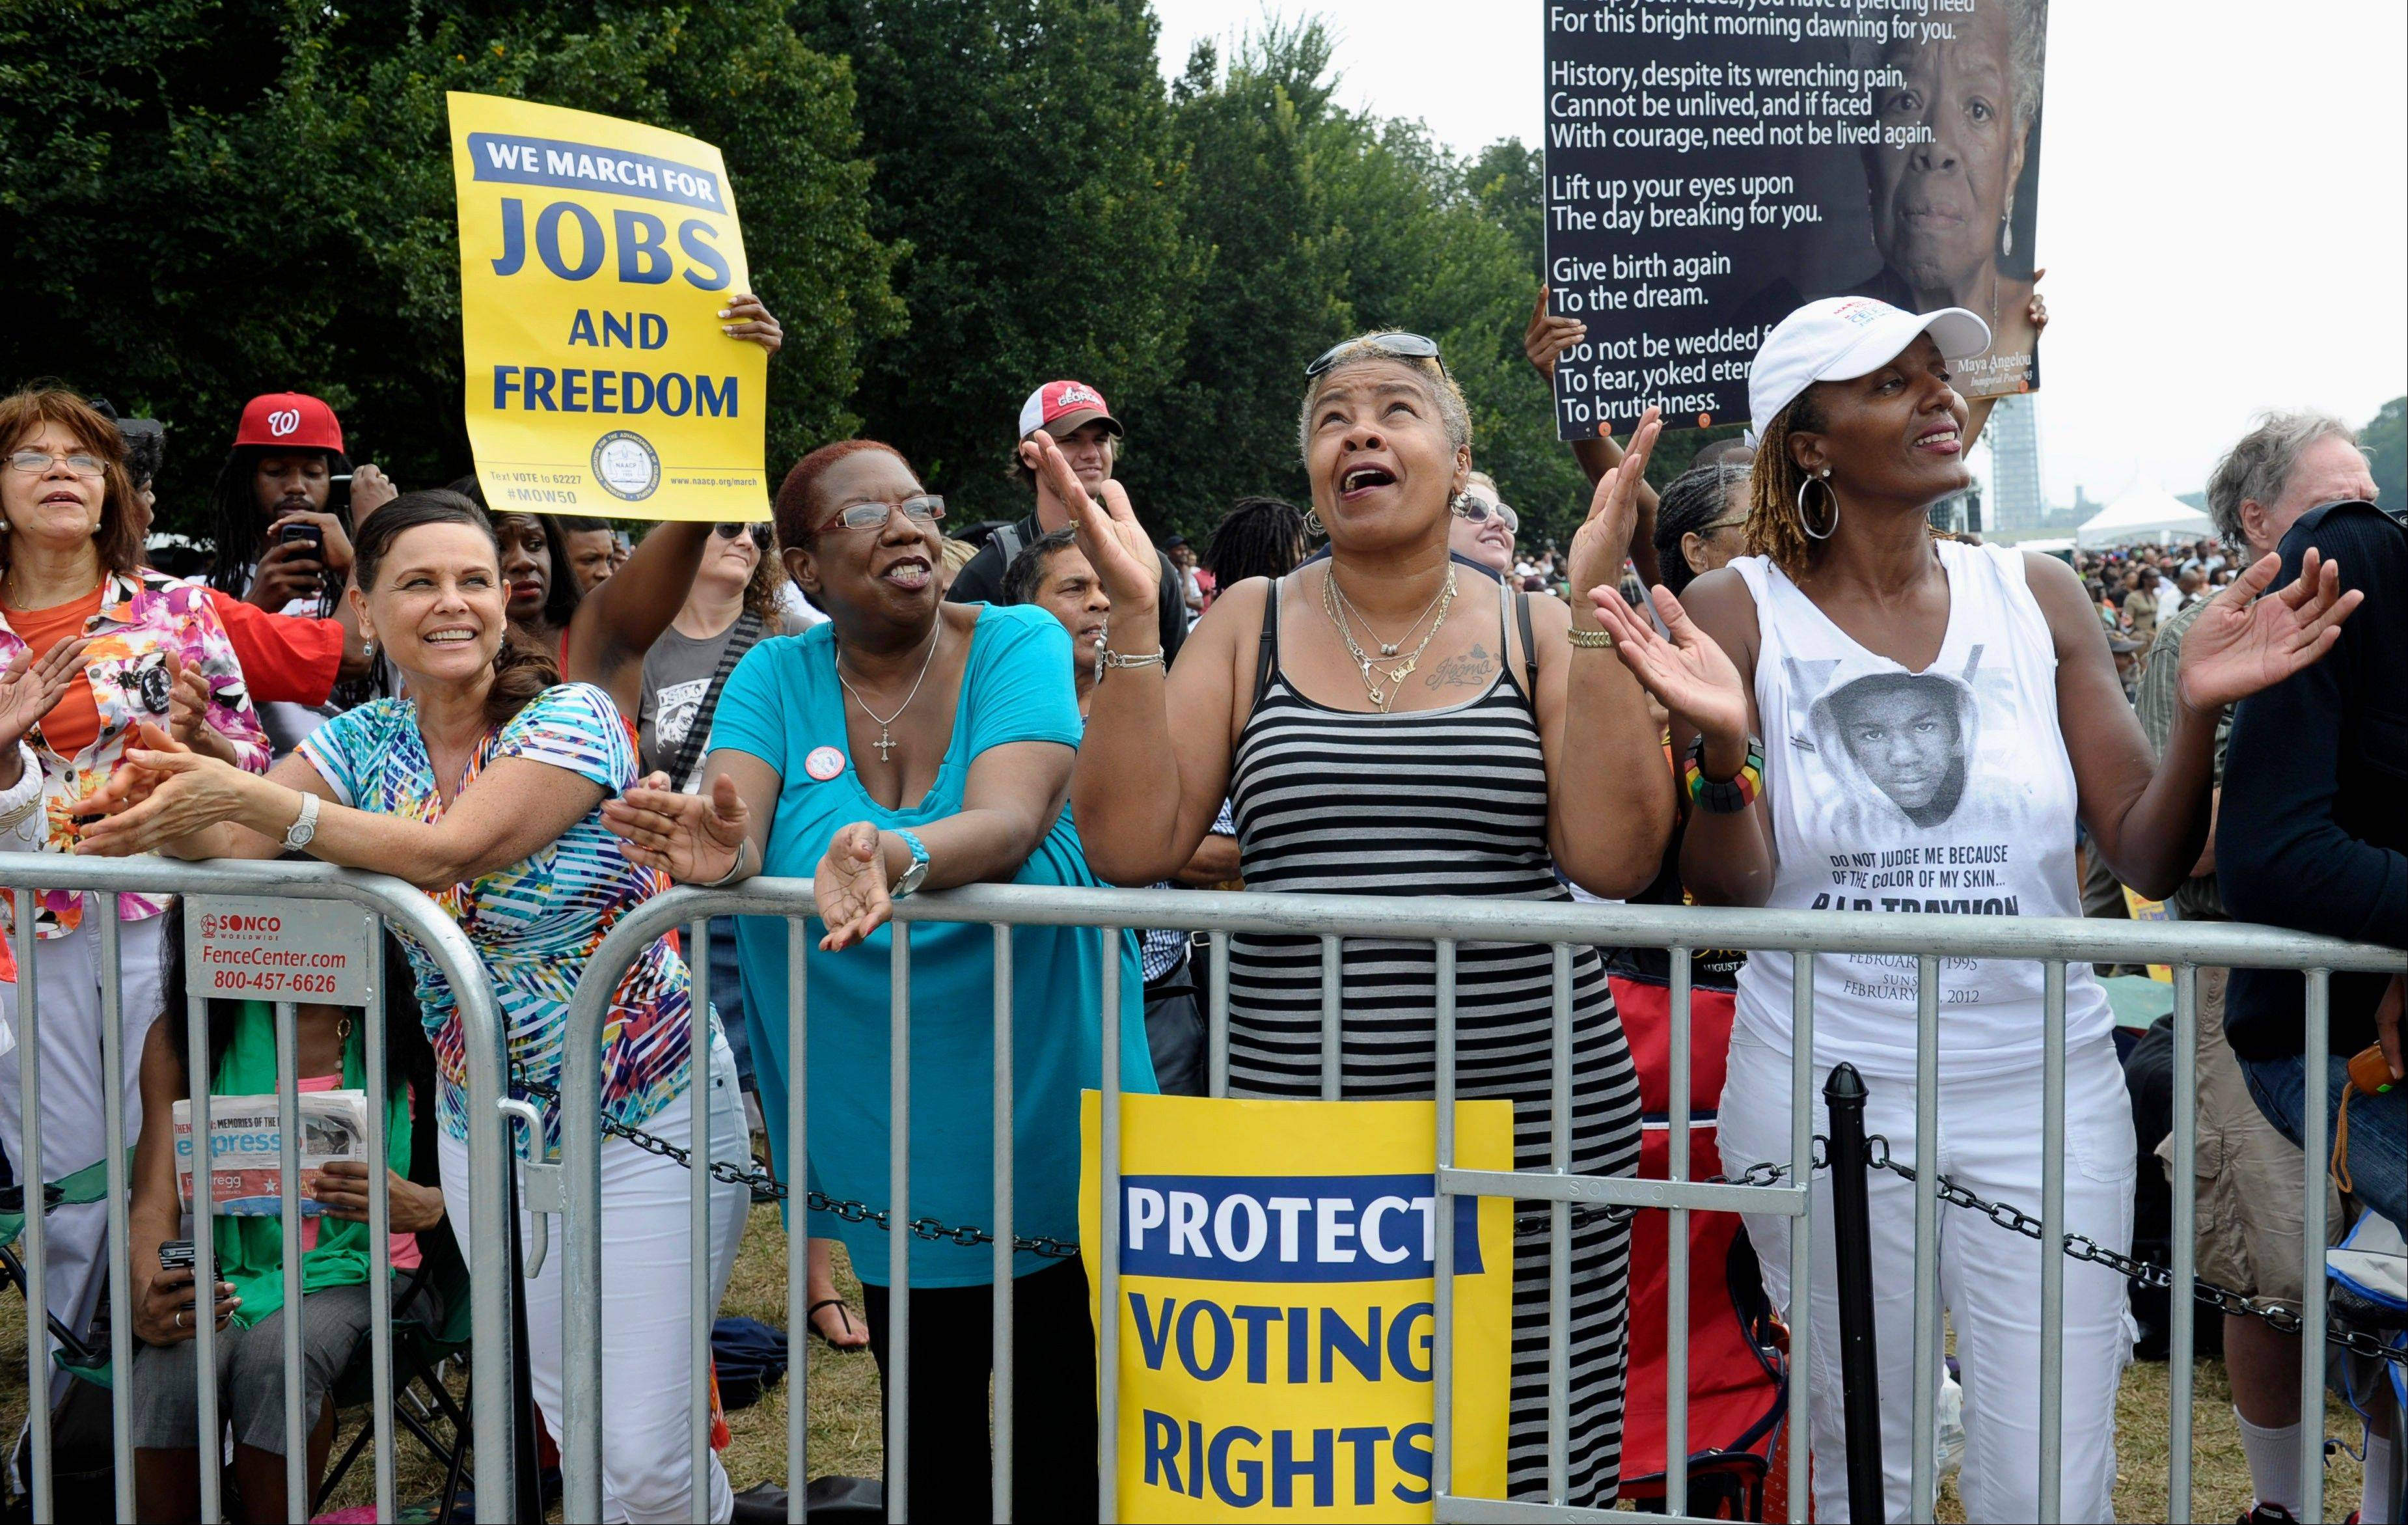 Allie Santiago of Houston, left, Brenda Reid of Bronx, N.Y., second from left, Caril Howard of North Chesterville, Va., and Jo Ann White Thompson of Goldsboro, N.C., listen to a musical performance.